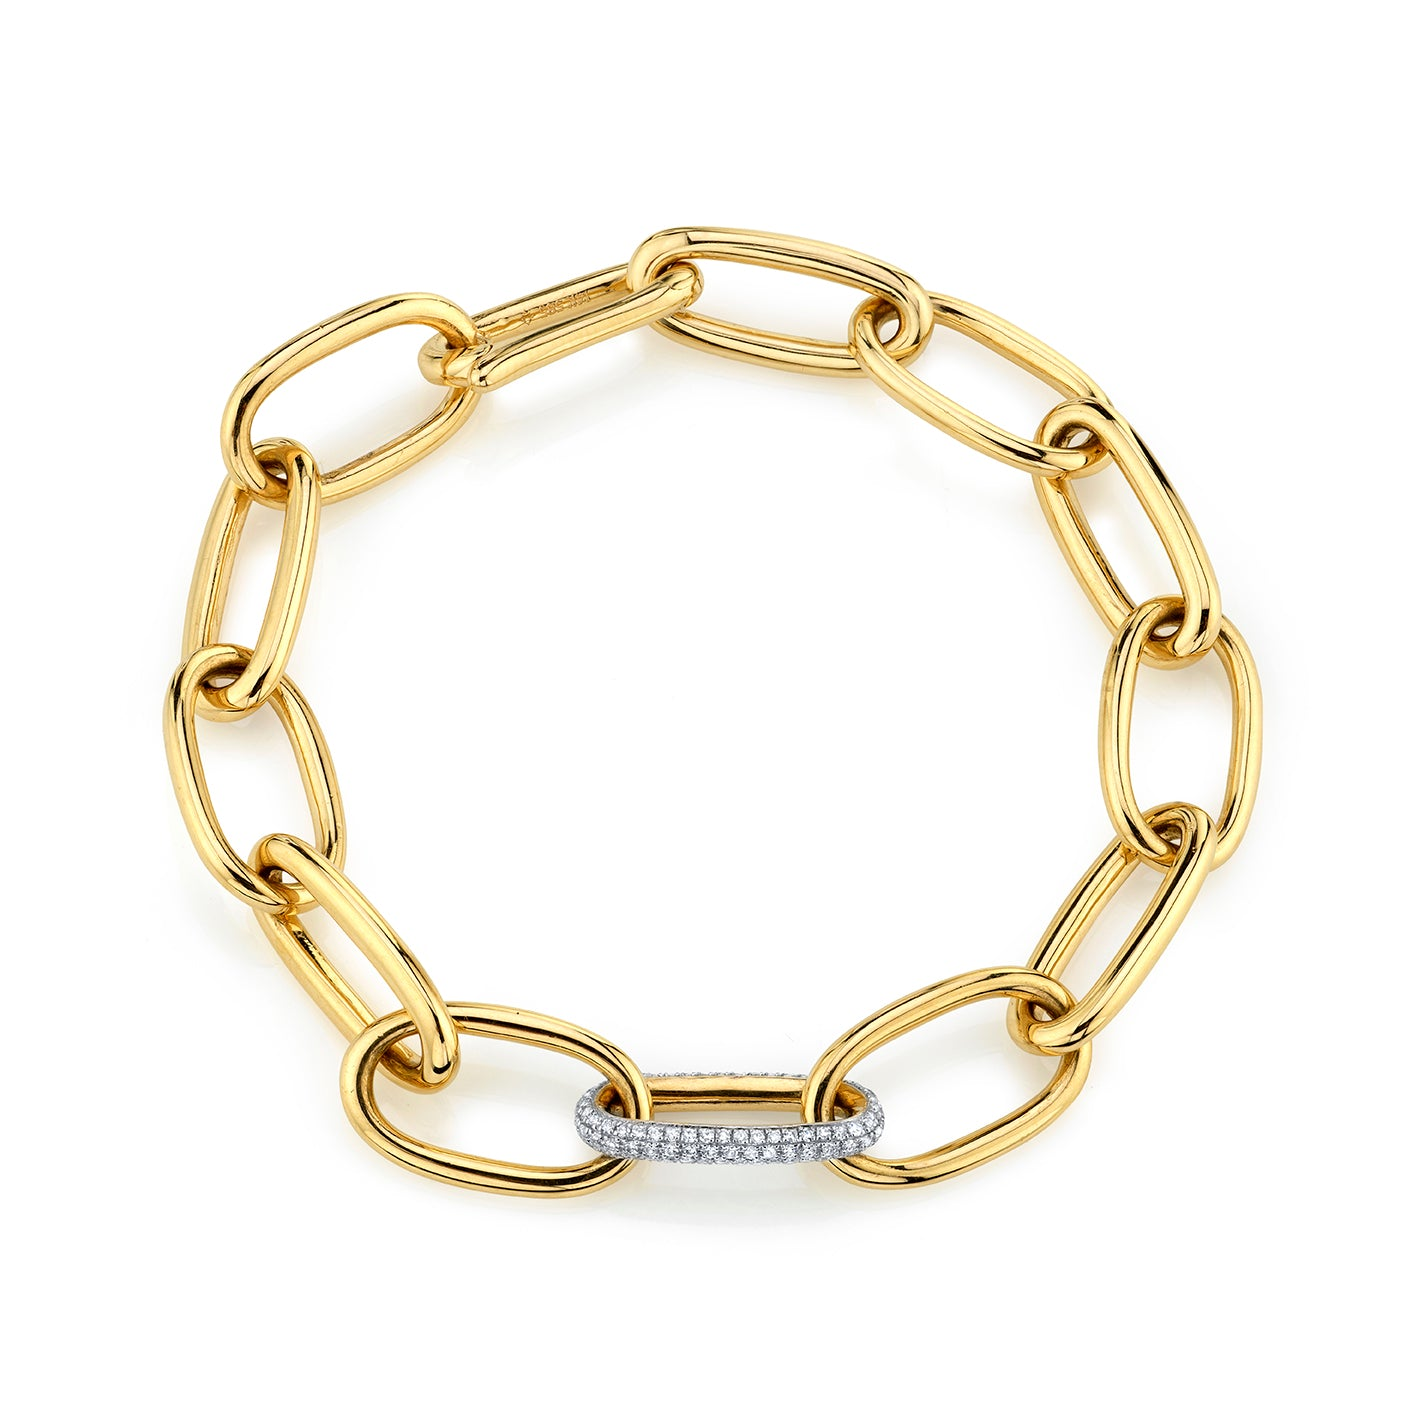 Long Rectangular Chain Bracelet with Pavé Invisible Clasp - Gabriela Artigas